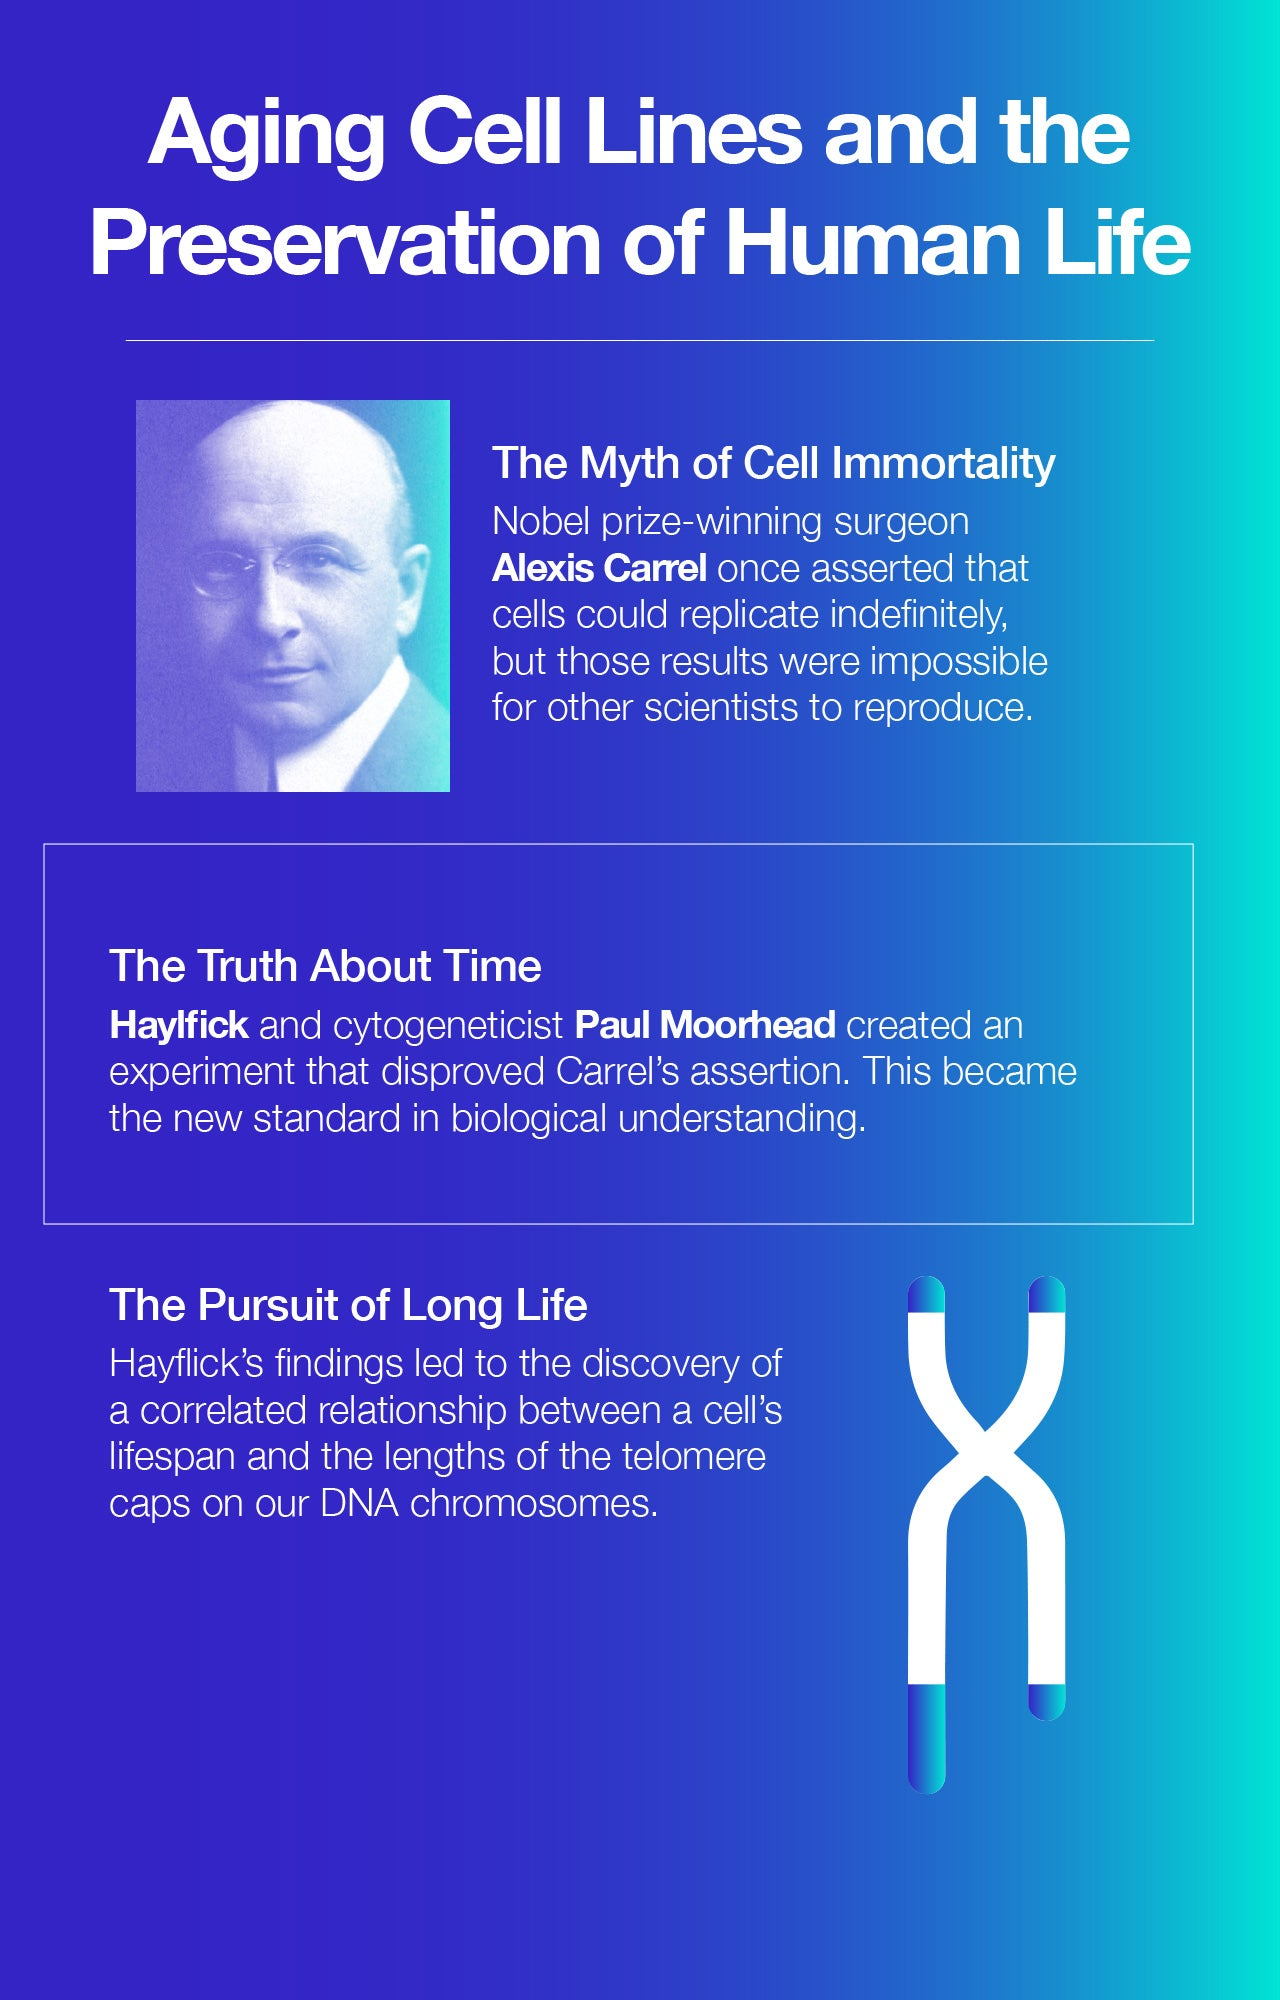 Aging Cell Lines and the Preservation of Human Life